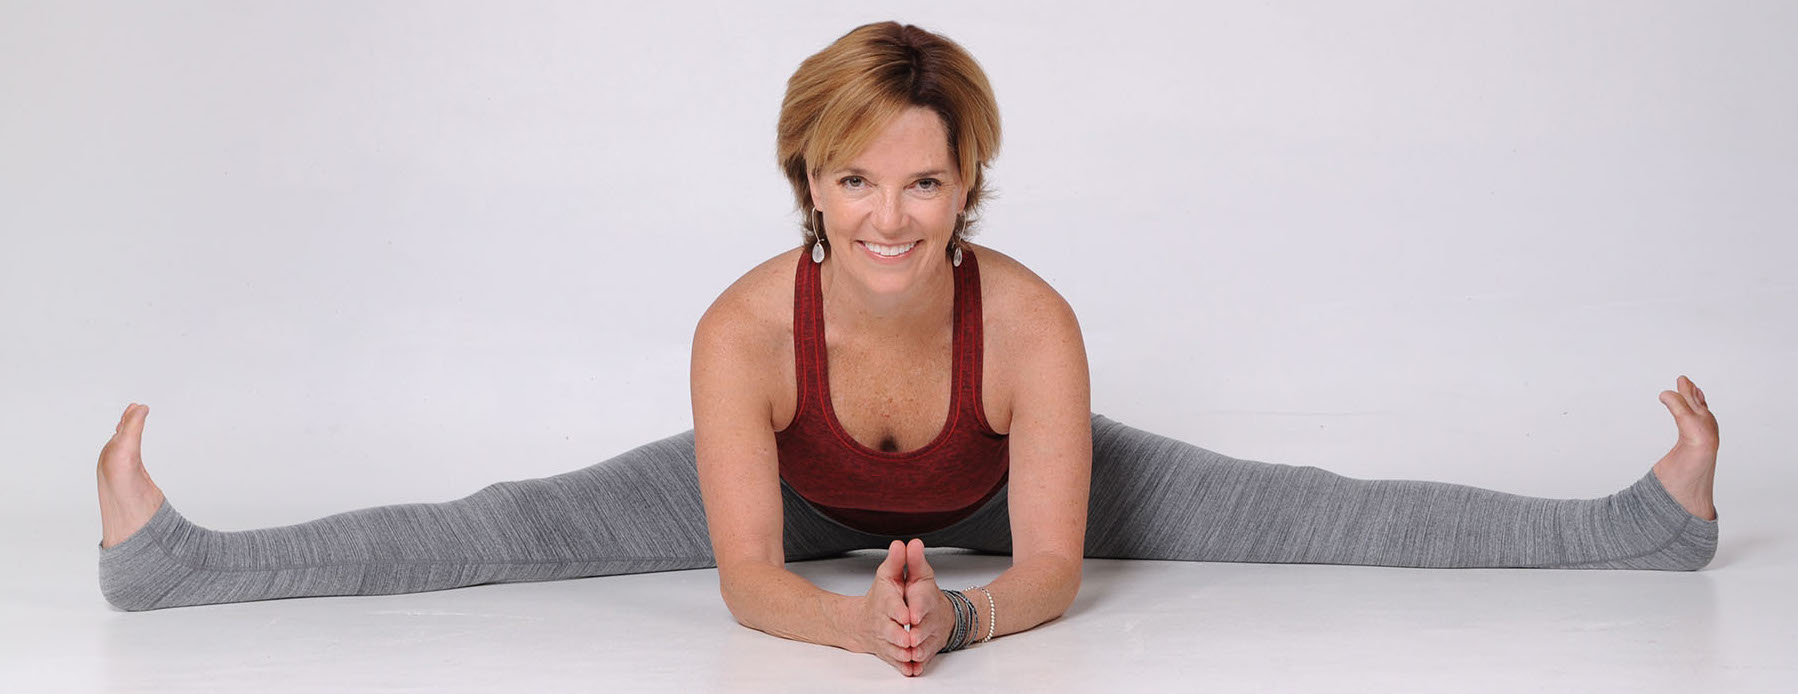 dayna case yoga move cropped.jpg